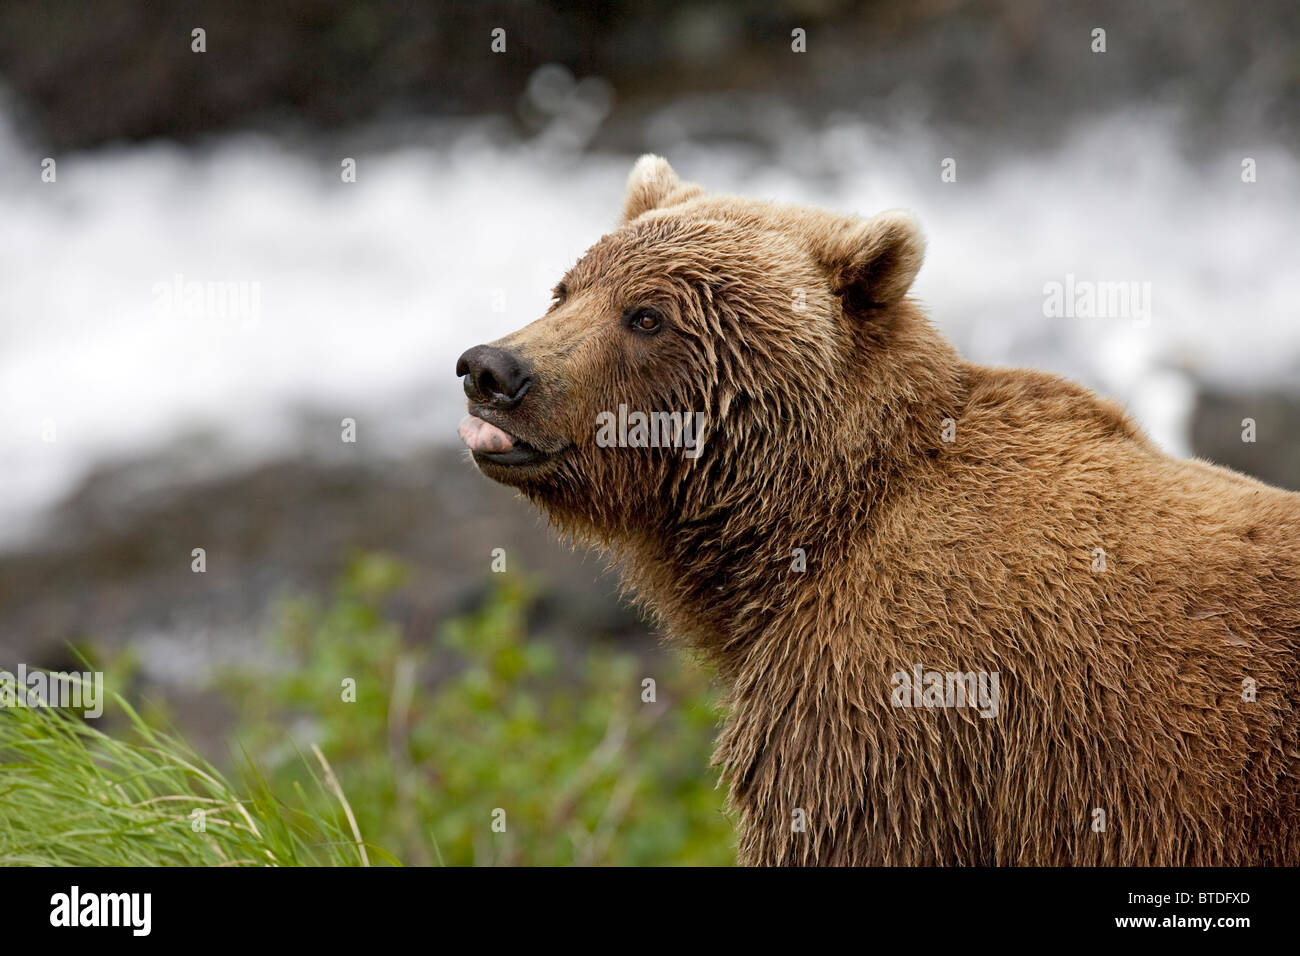 Portrait of an adult Brown Bear sticking its tongue out, McNeil River State Game Sanctuary, Southwest Alaska, Summer - Stock Image